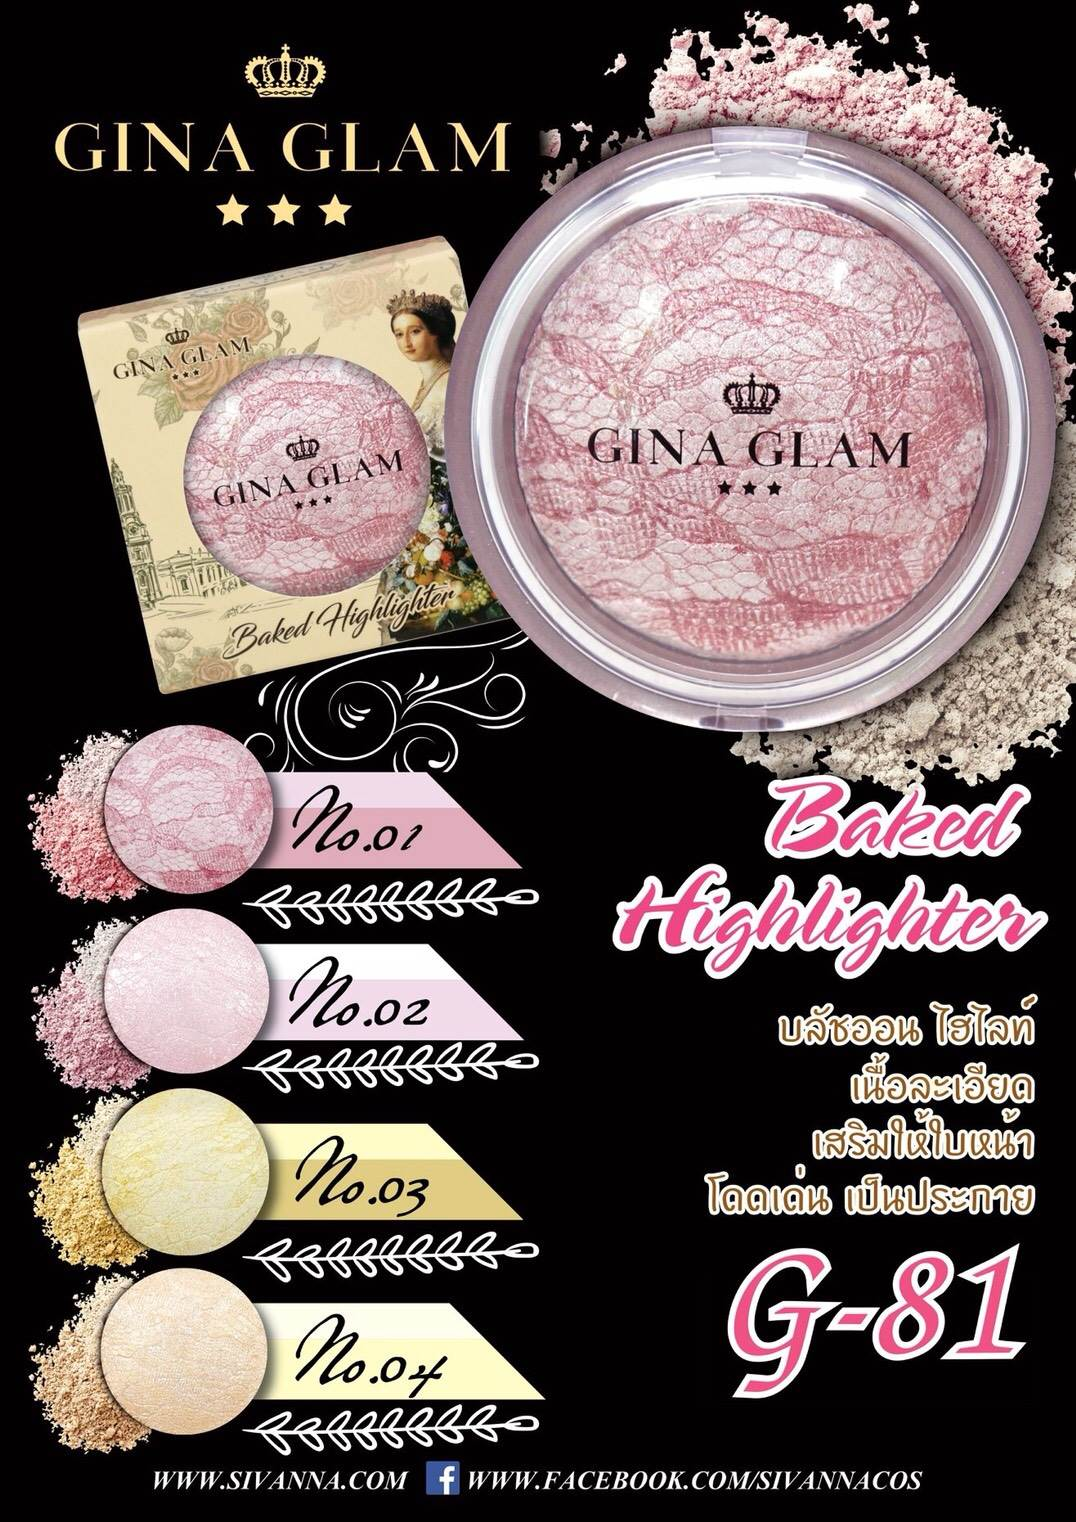 ของแท้ G81 Gina Glam Baked Highlighter